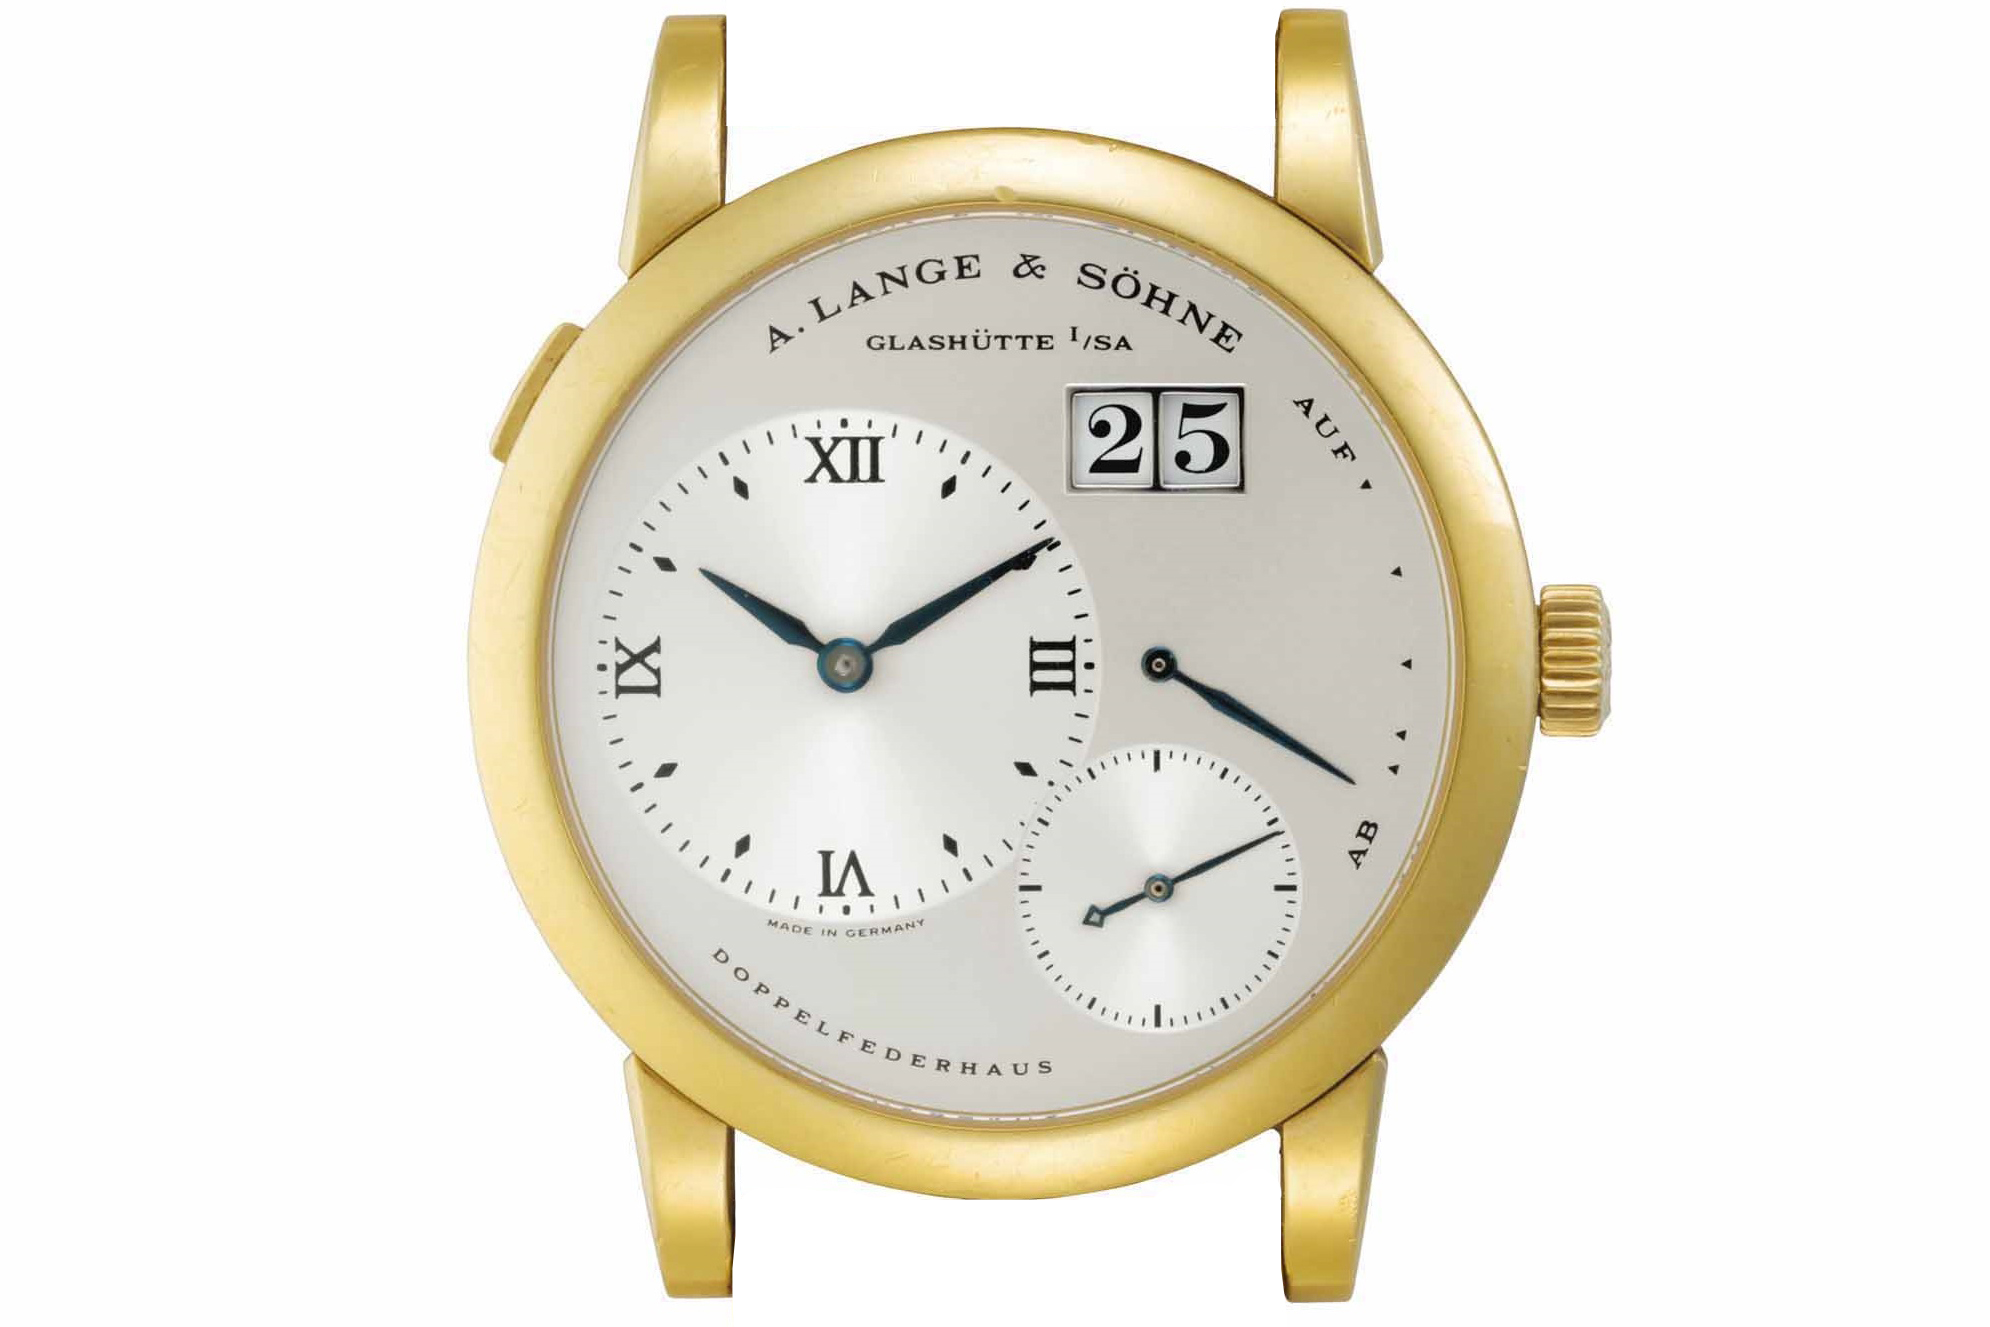 lange 1 in yellow gold case with blued hands reference 101.022